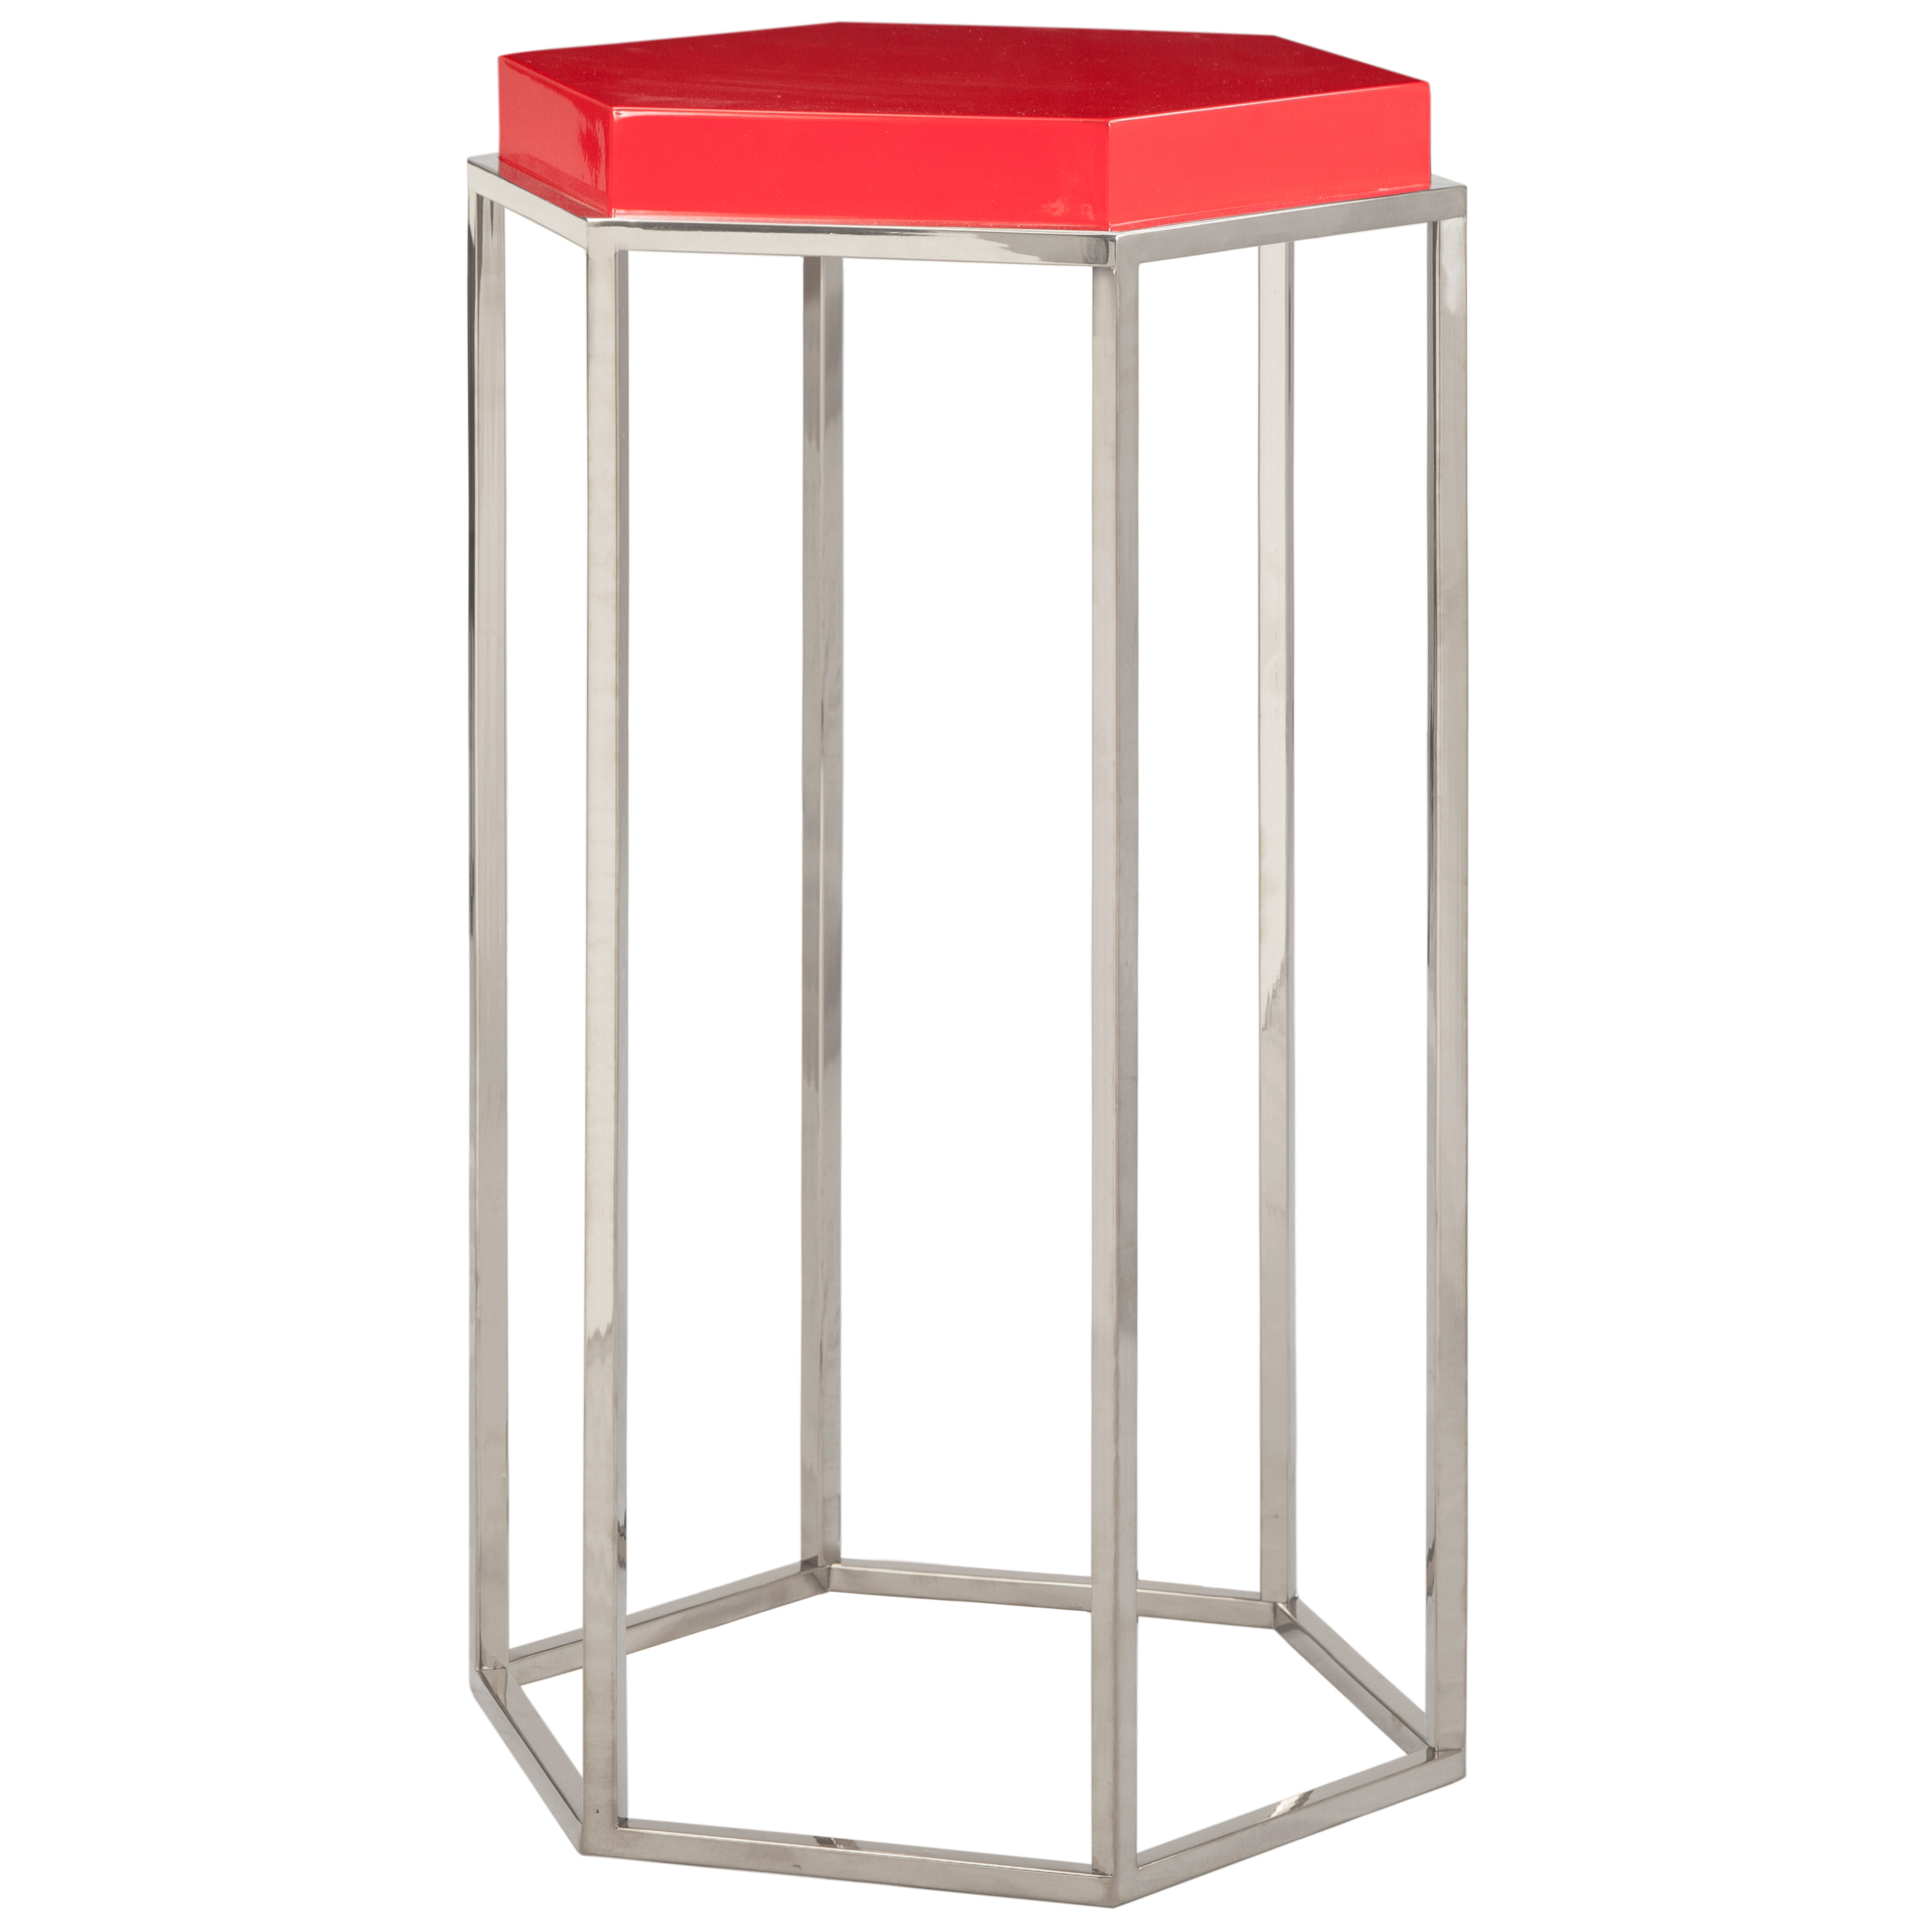 Lily Hollywood Regency Hexagonal Red Lacquer Nickel Side End Table